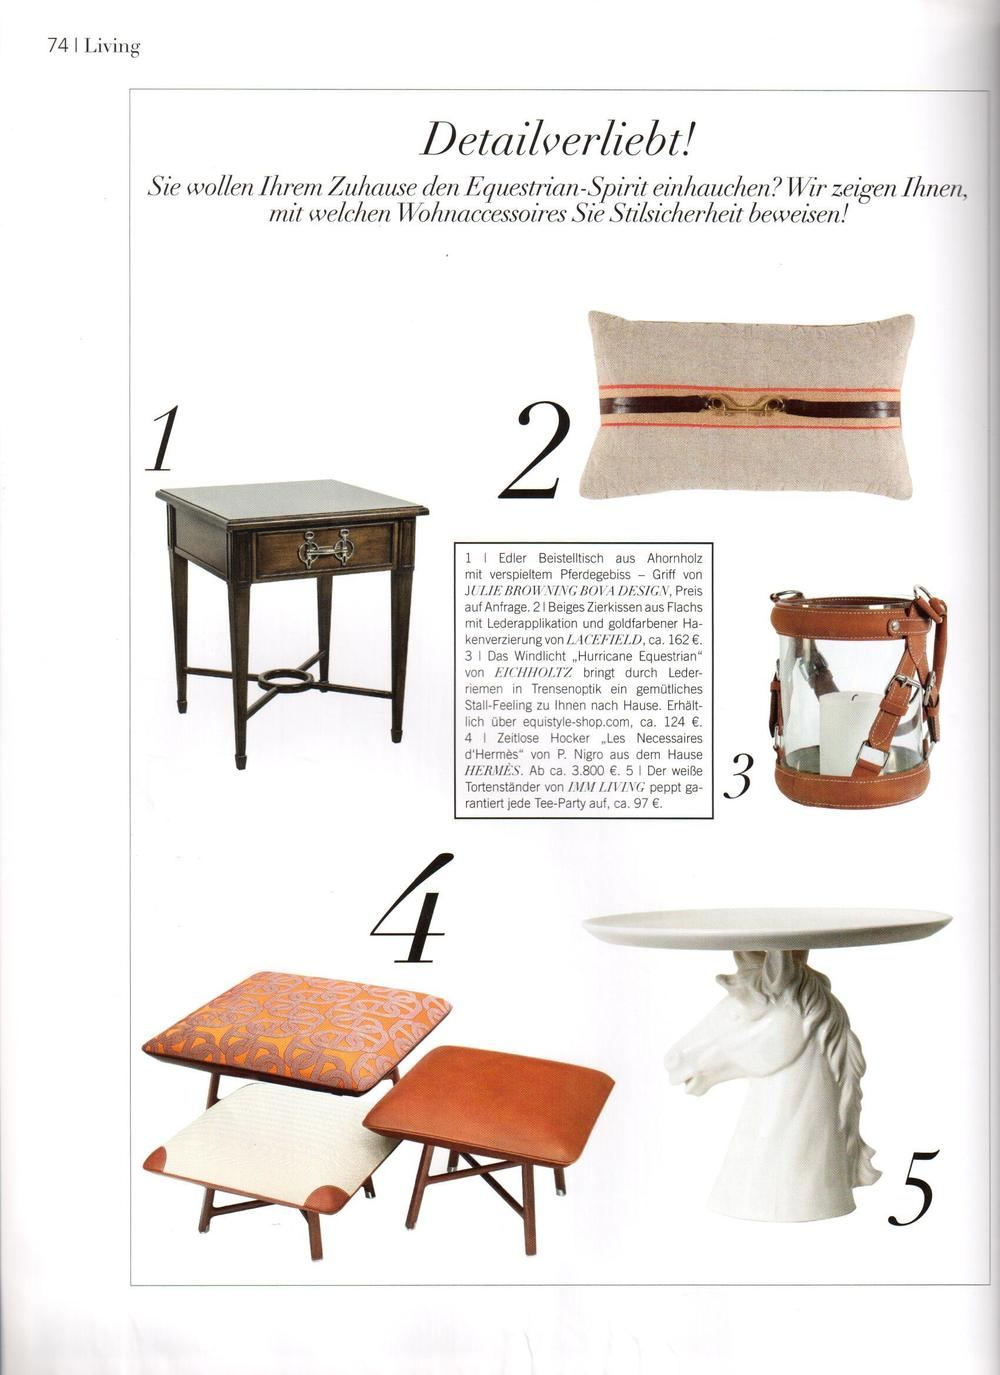 This collage features Julie's Shire End Table that she designed for her collection for Abner Henry Fine Furniture (item #1).